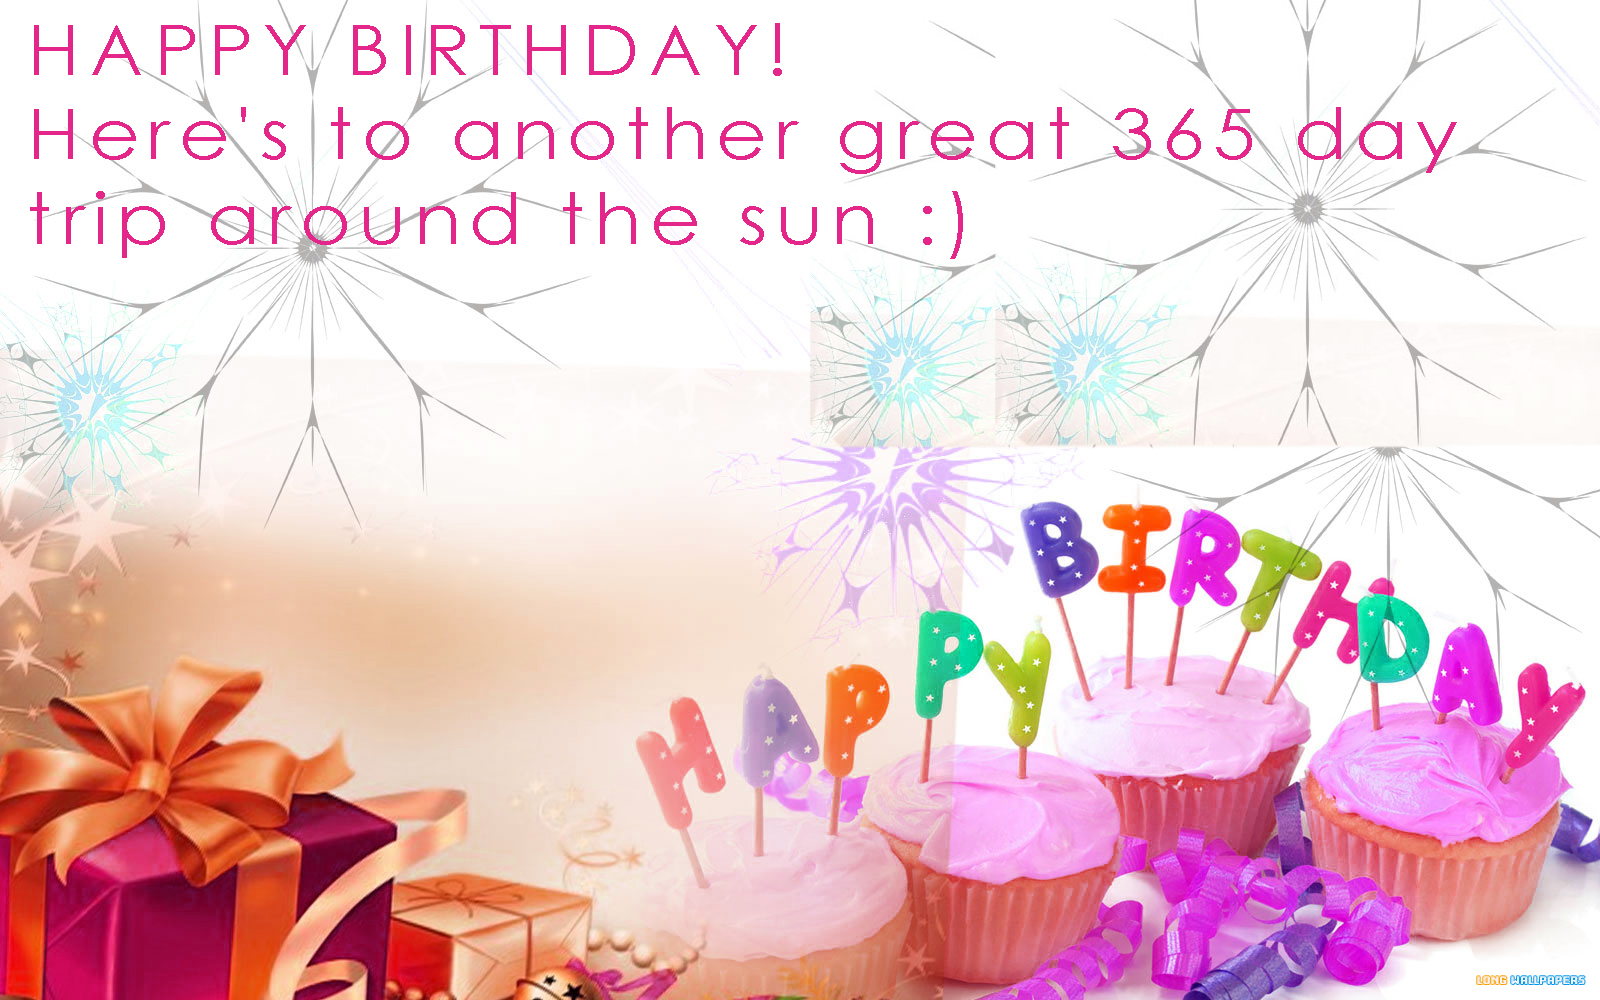 15 Best Birthday Card Messages and Wishes 1Birthday Greetings – Birthday Invitations Message